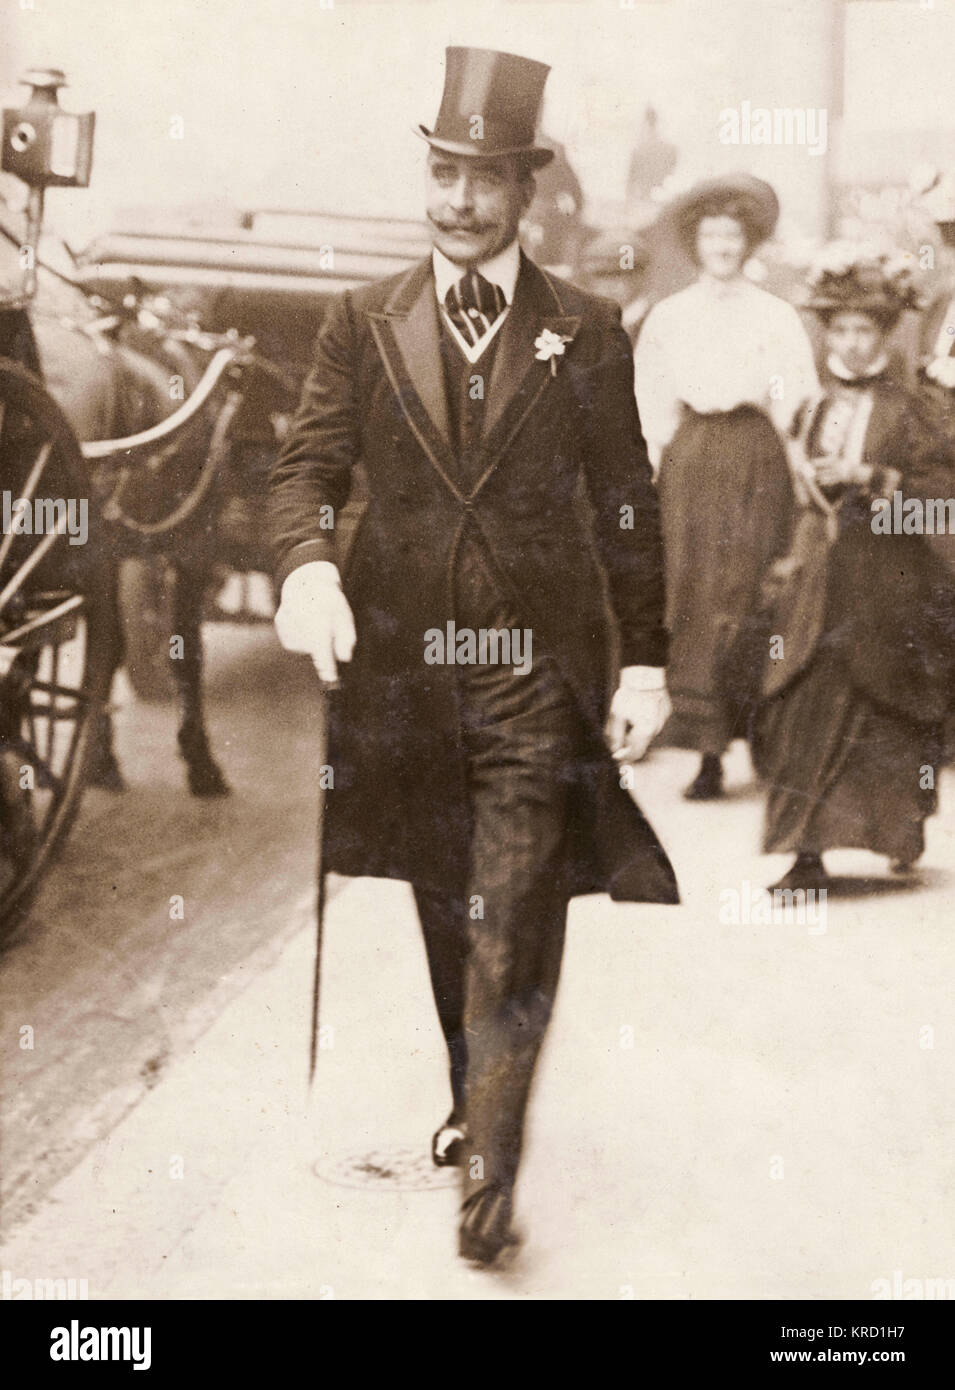 Prince Francis of Teck (1870-1910), brother of Queen Mary, walking along the street in smart morning dress.     - Stock Image